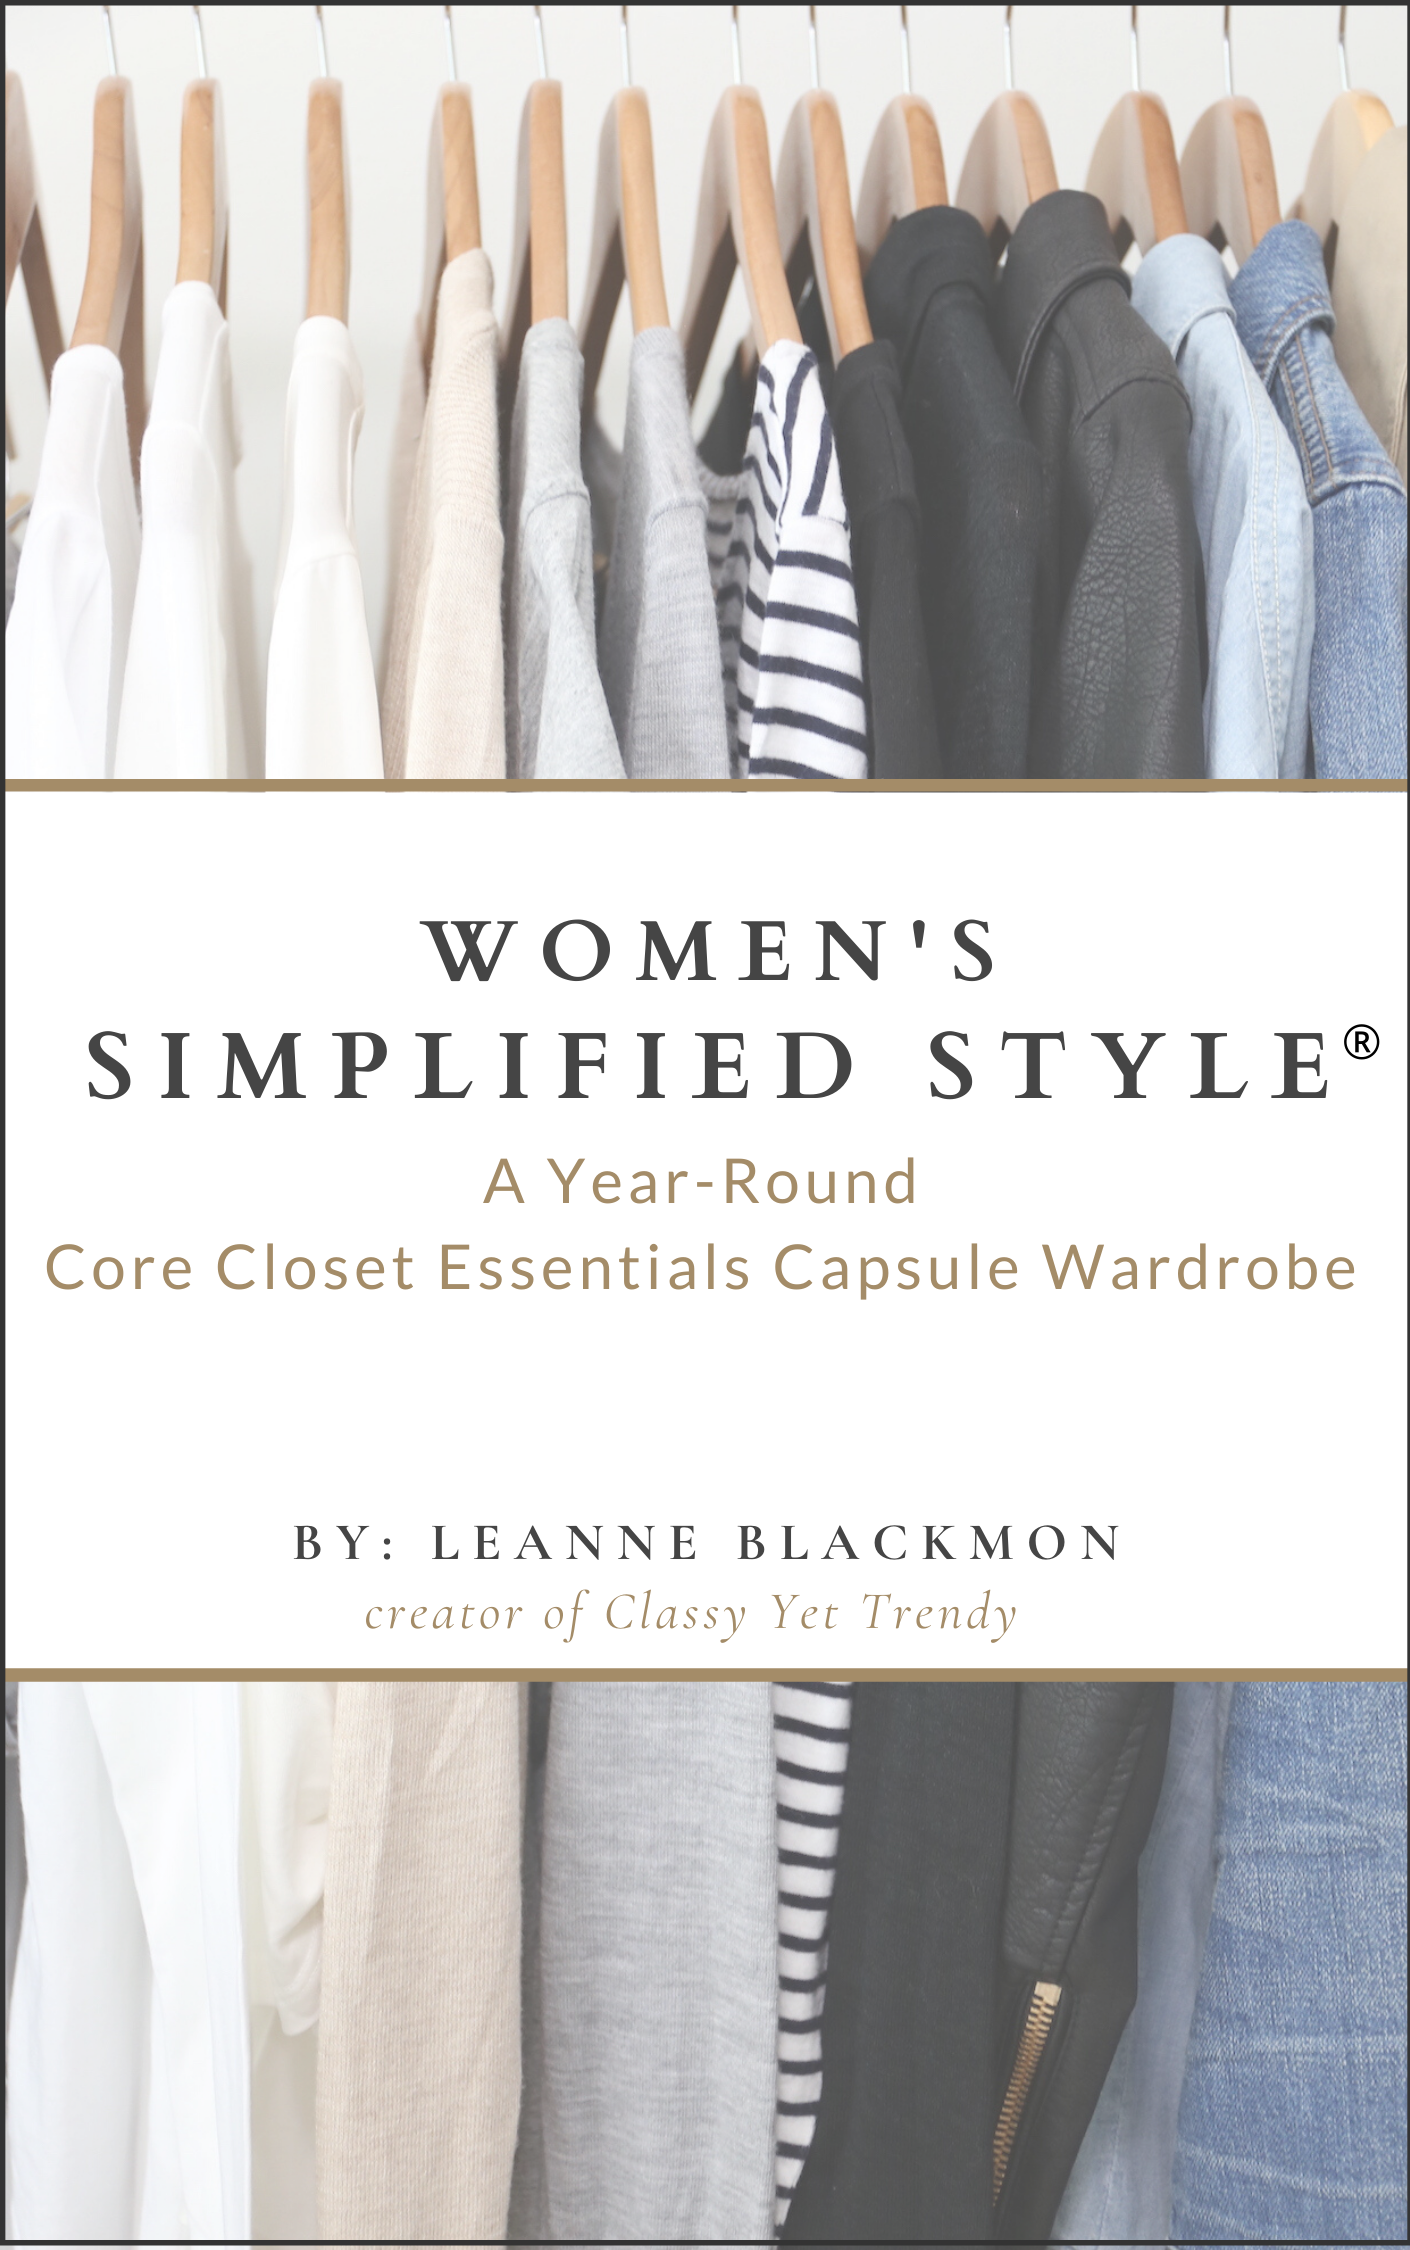 Simplified Style®: A Year-Round Core Closet Essentials Capsule Wardrobe